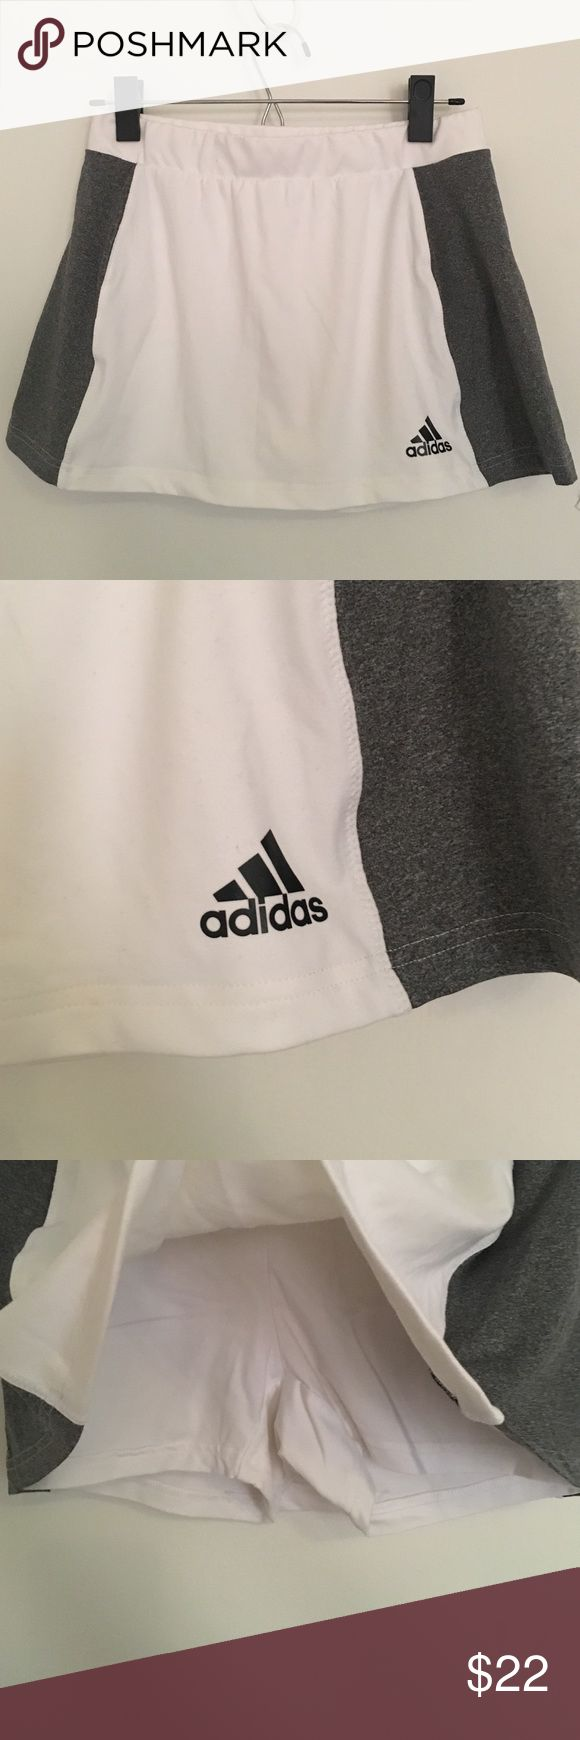 Adidas tennis skort Adidas white and grey tennis skort. Shorts attached. Grey on the sides. Elastic waist band. Really soft material, only worn once!! adidas Shorts Skorts